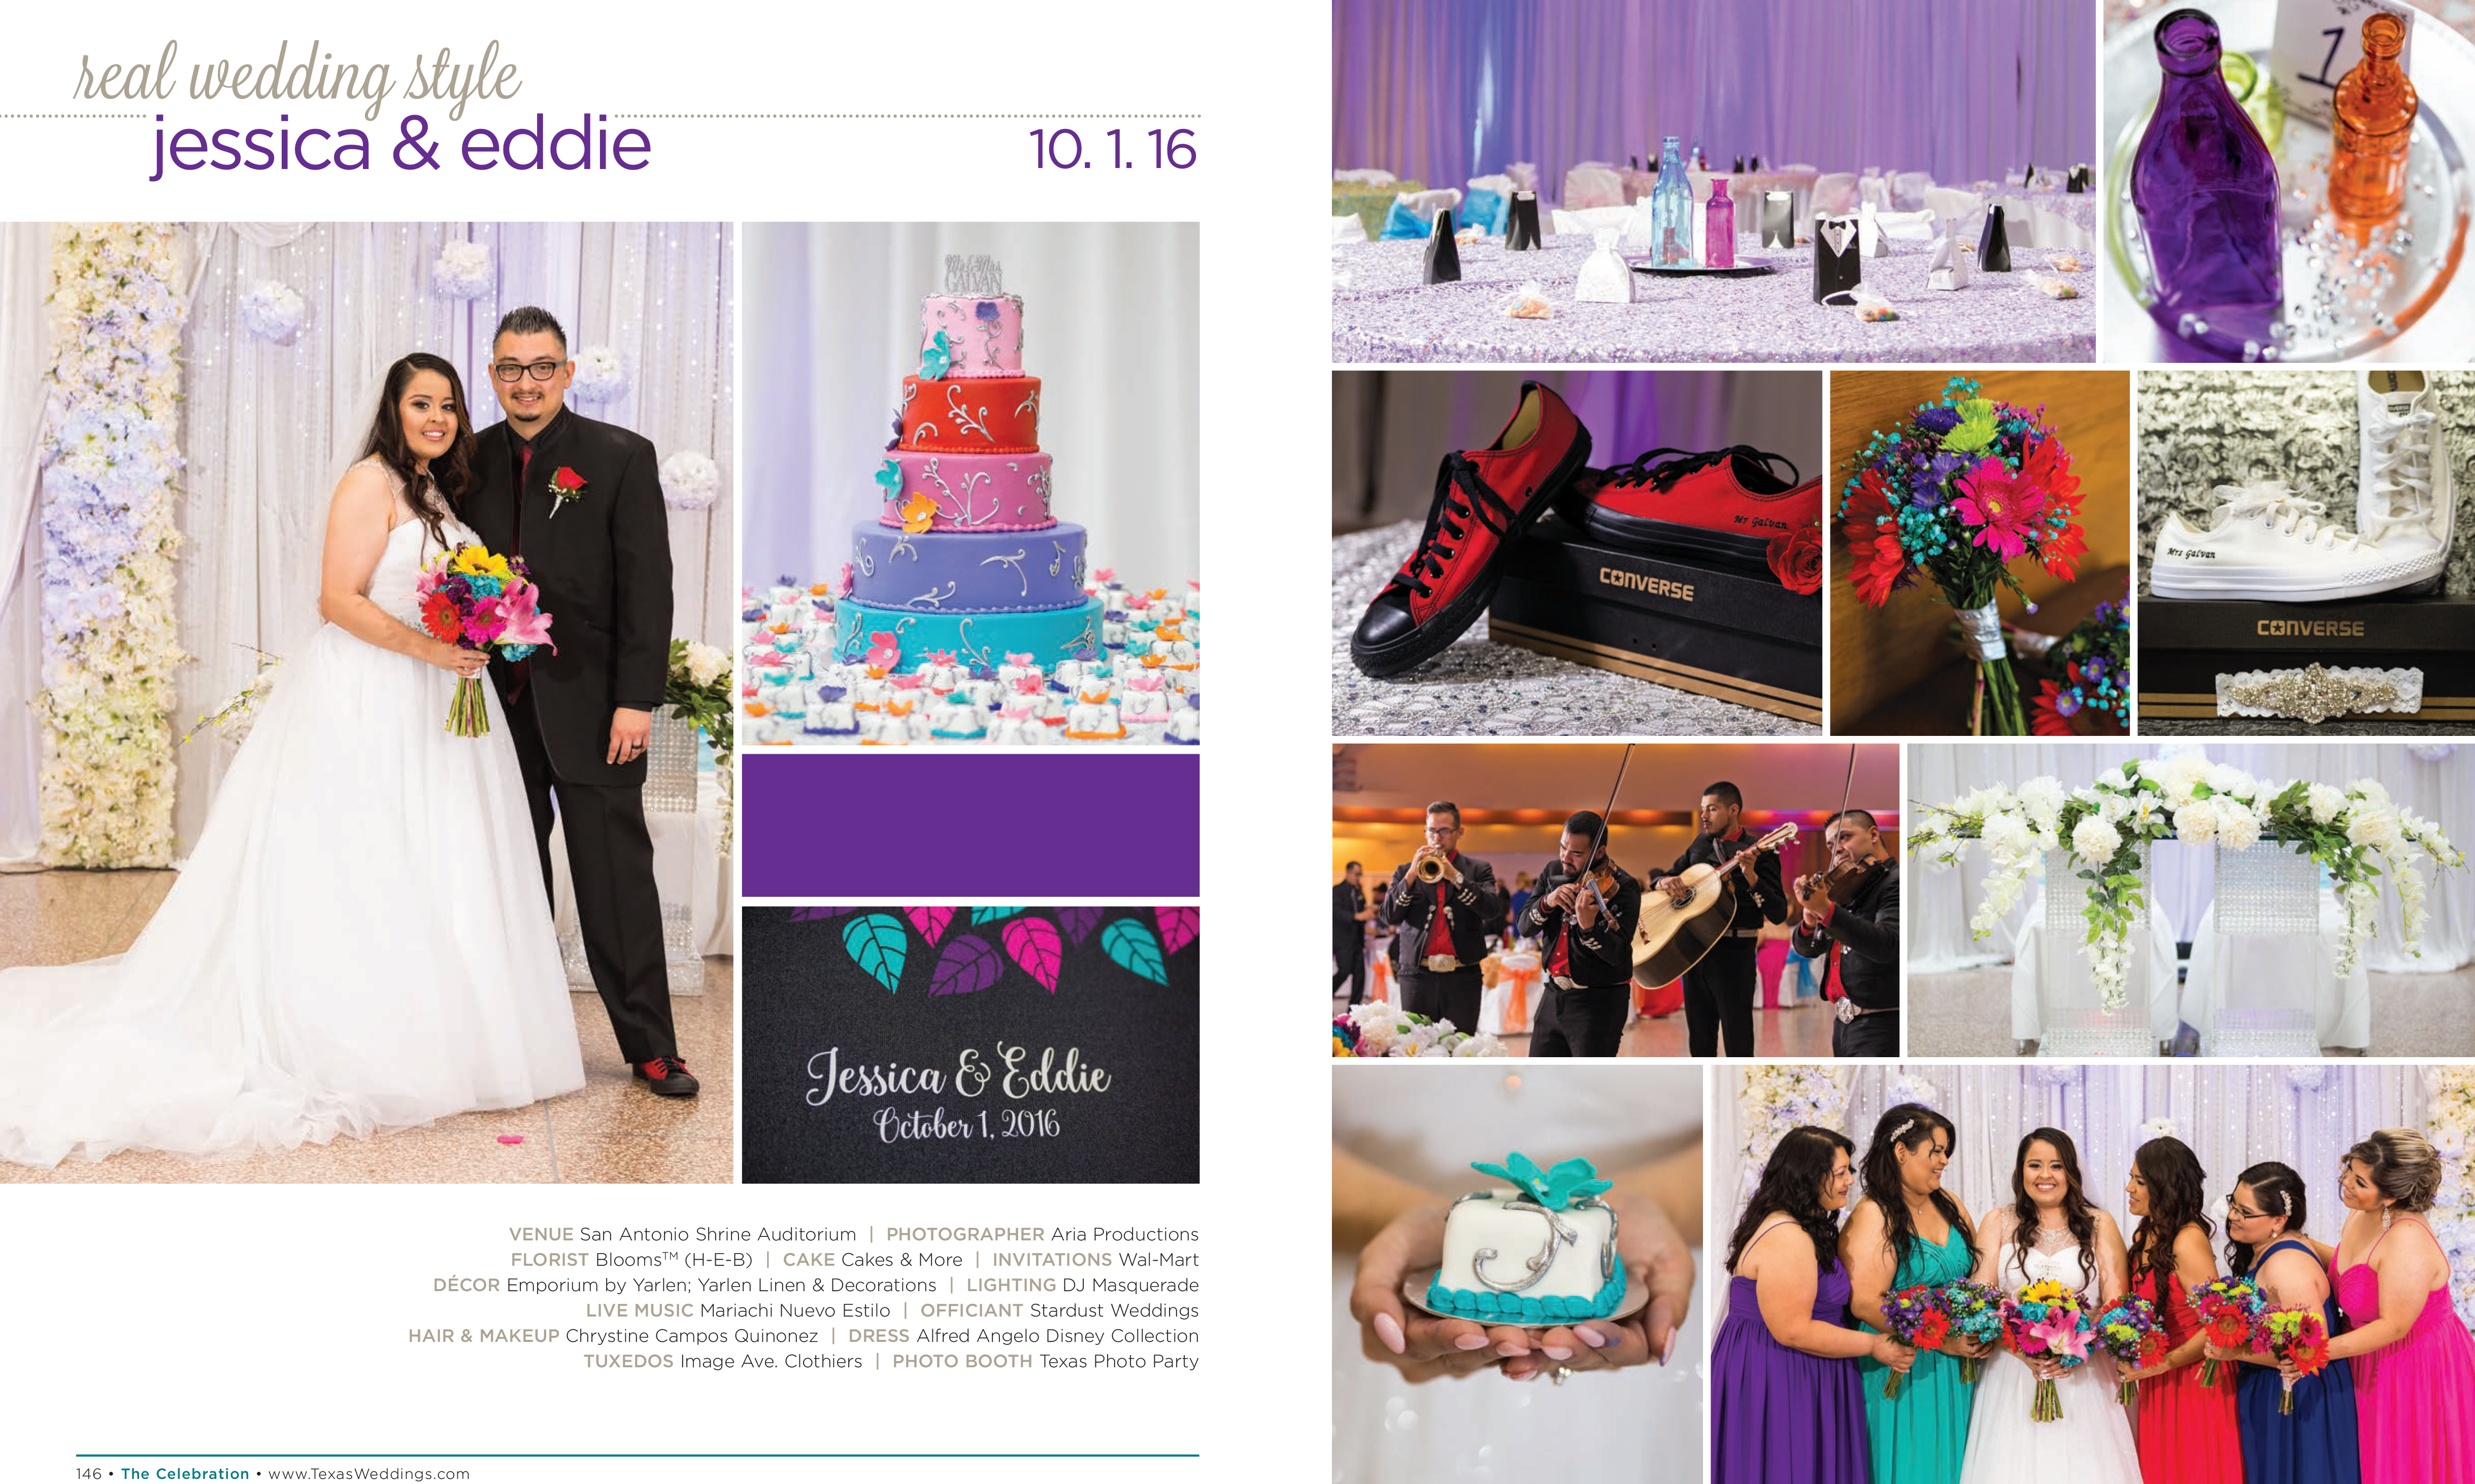 Jessica & Eddie in their Real Wedding Page in the Spring/Summer 2017 Texas Wedding Guide